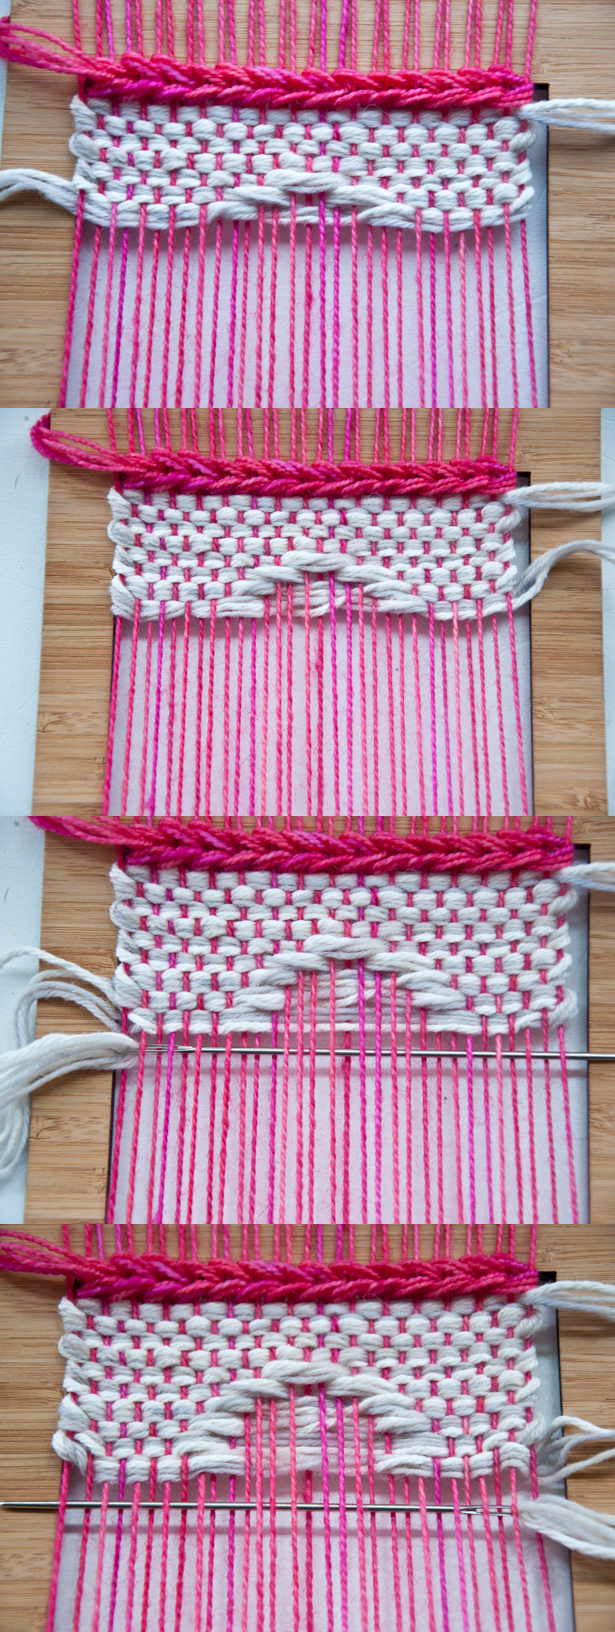 Weaving Weft Over Shapes | The Weaving Loom